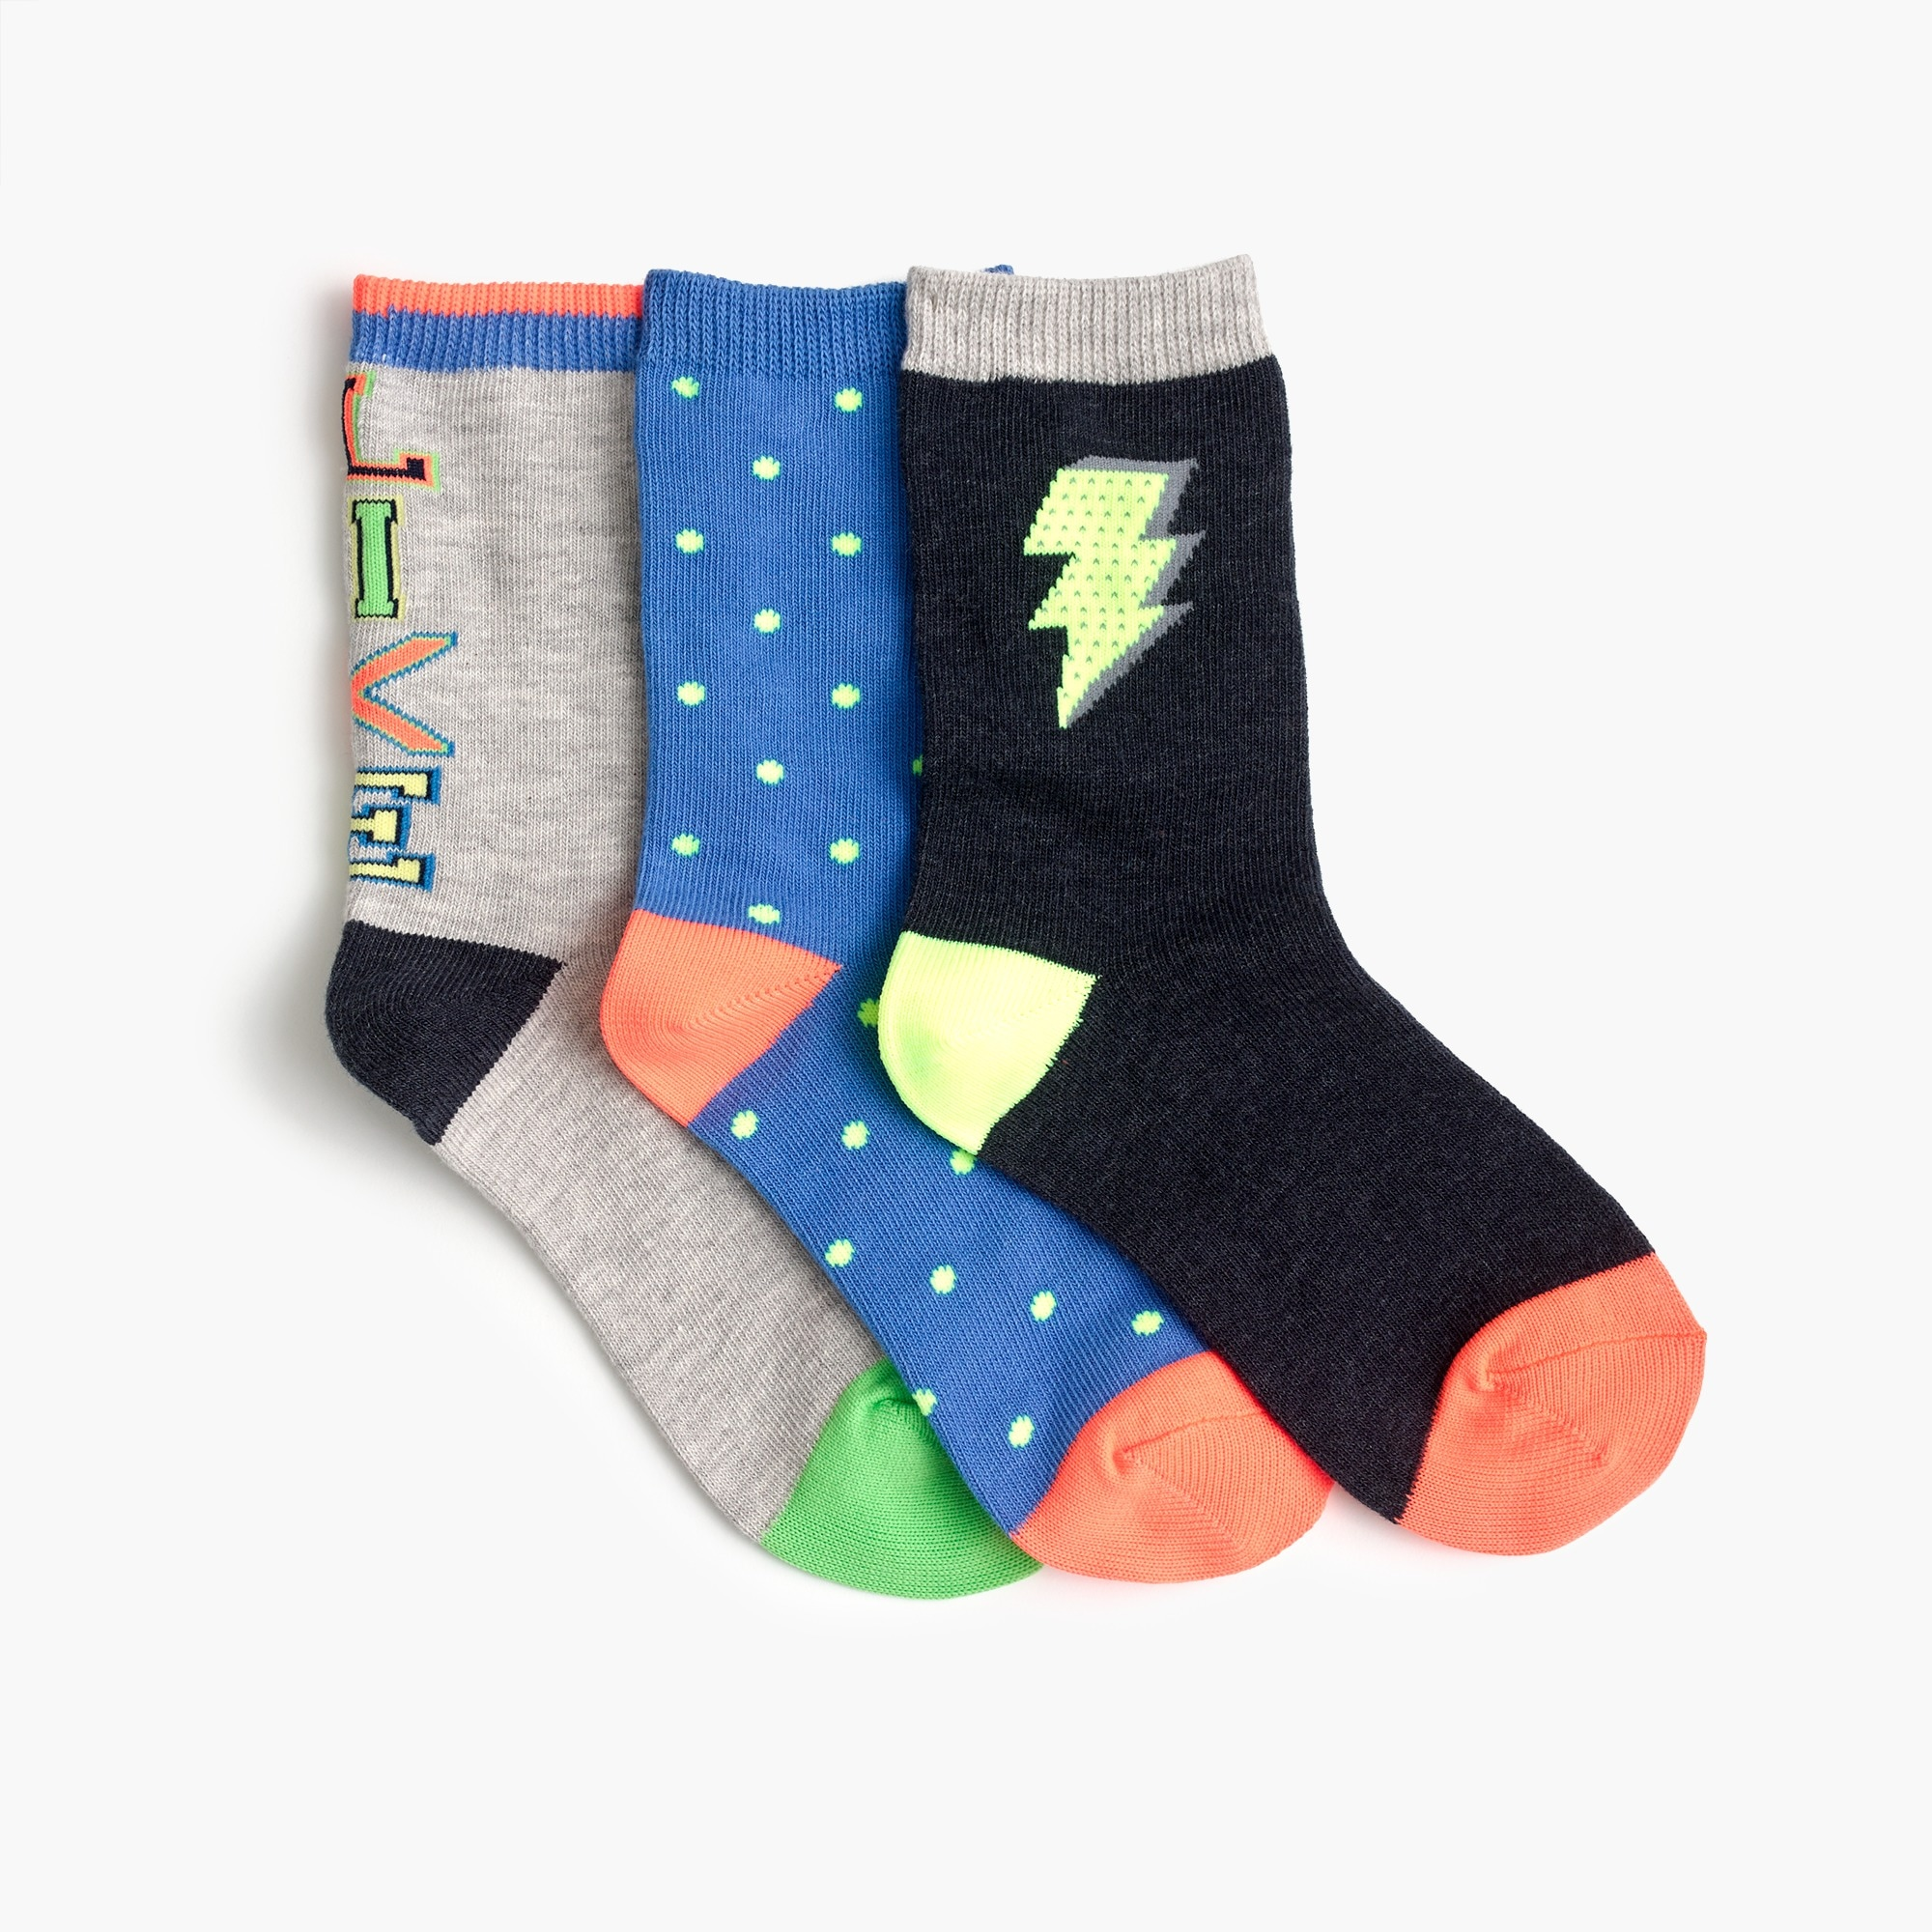 Boys' trouser socks three-pack in multi boy accessories c